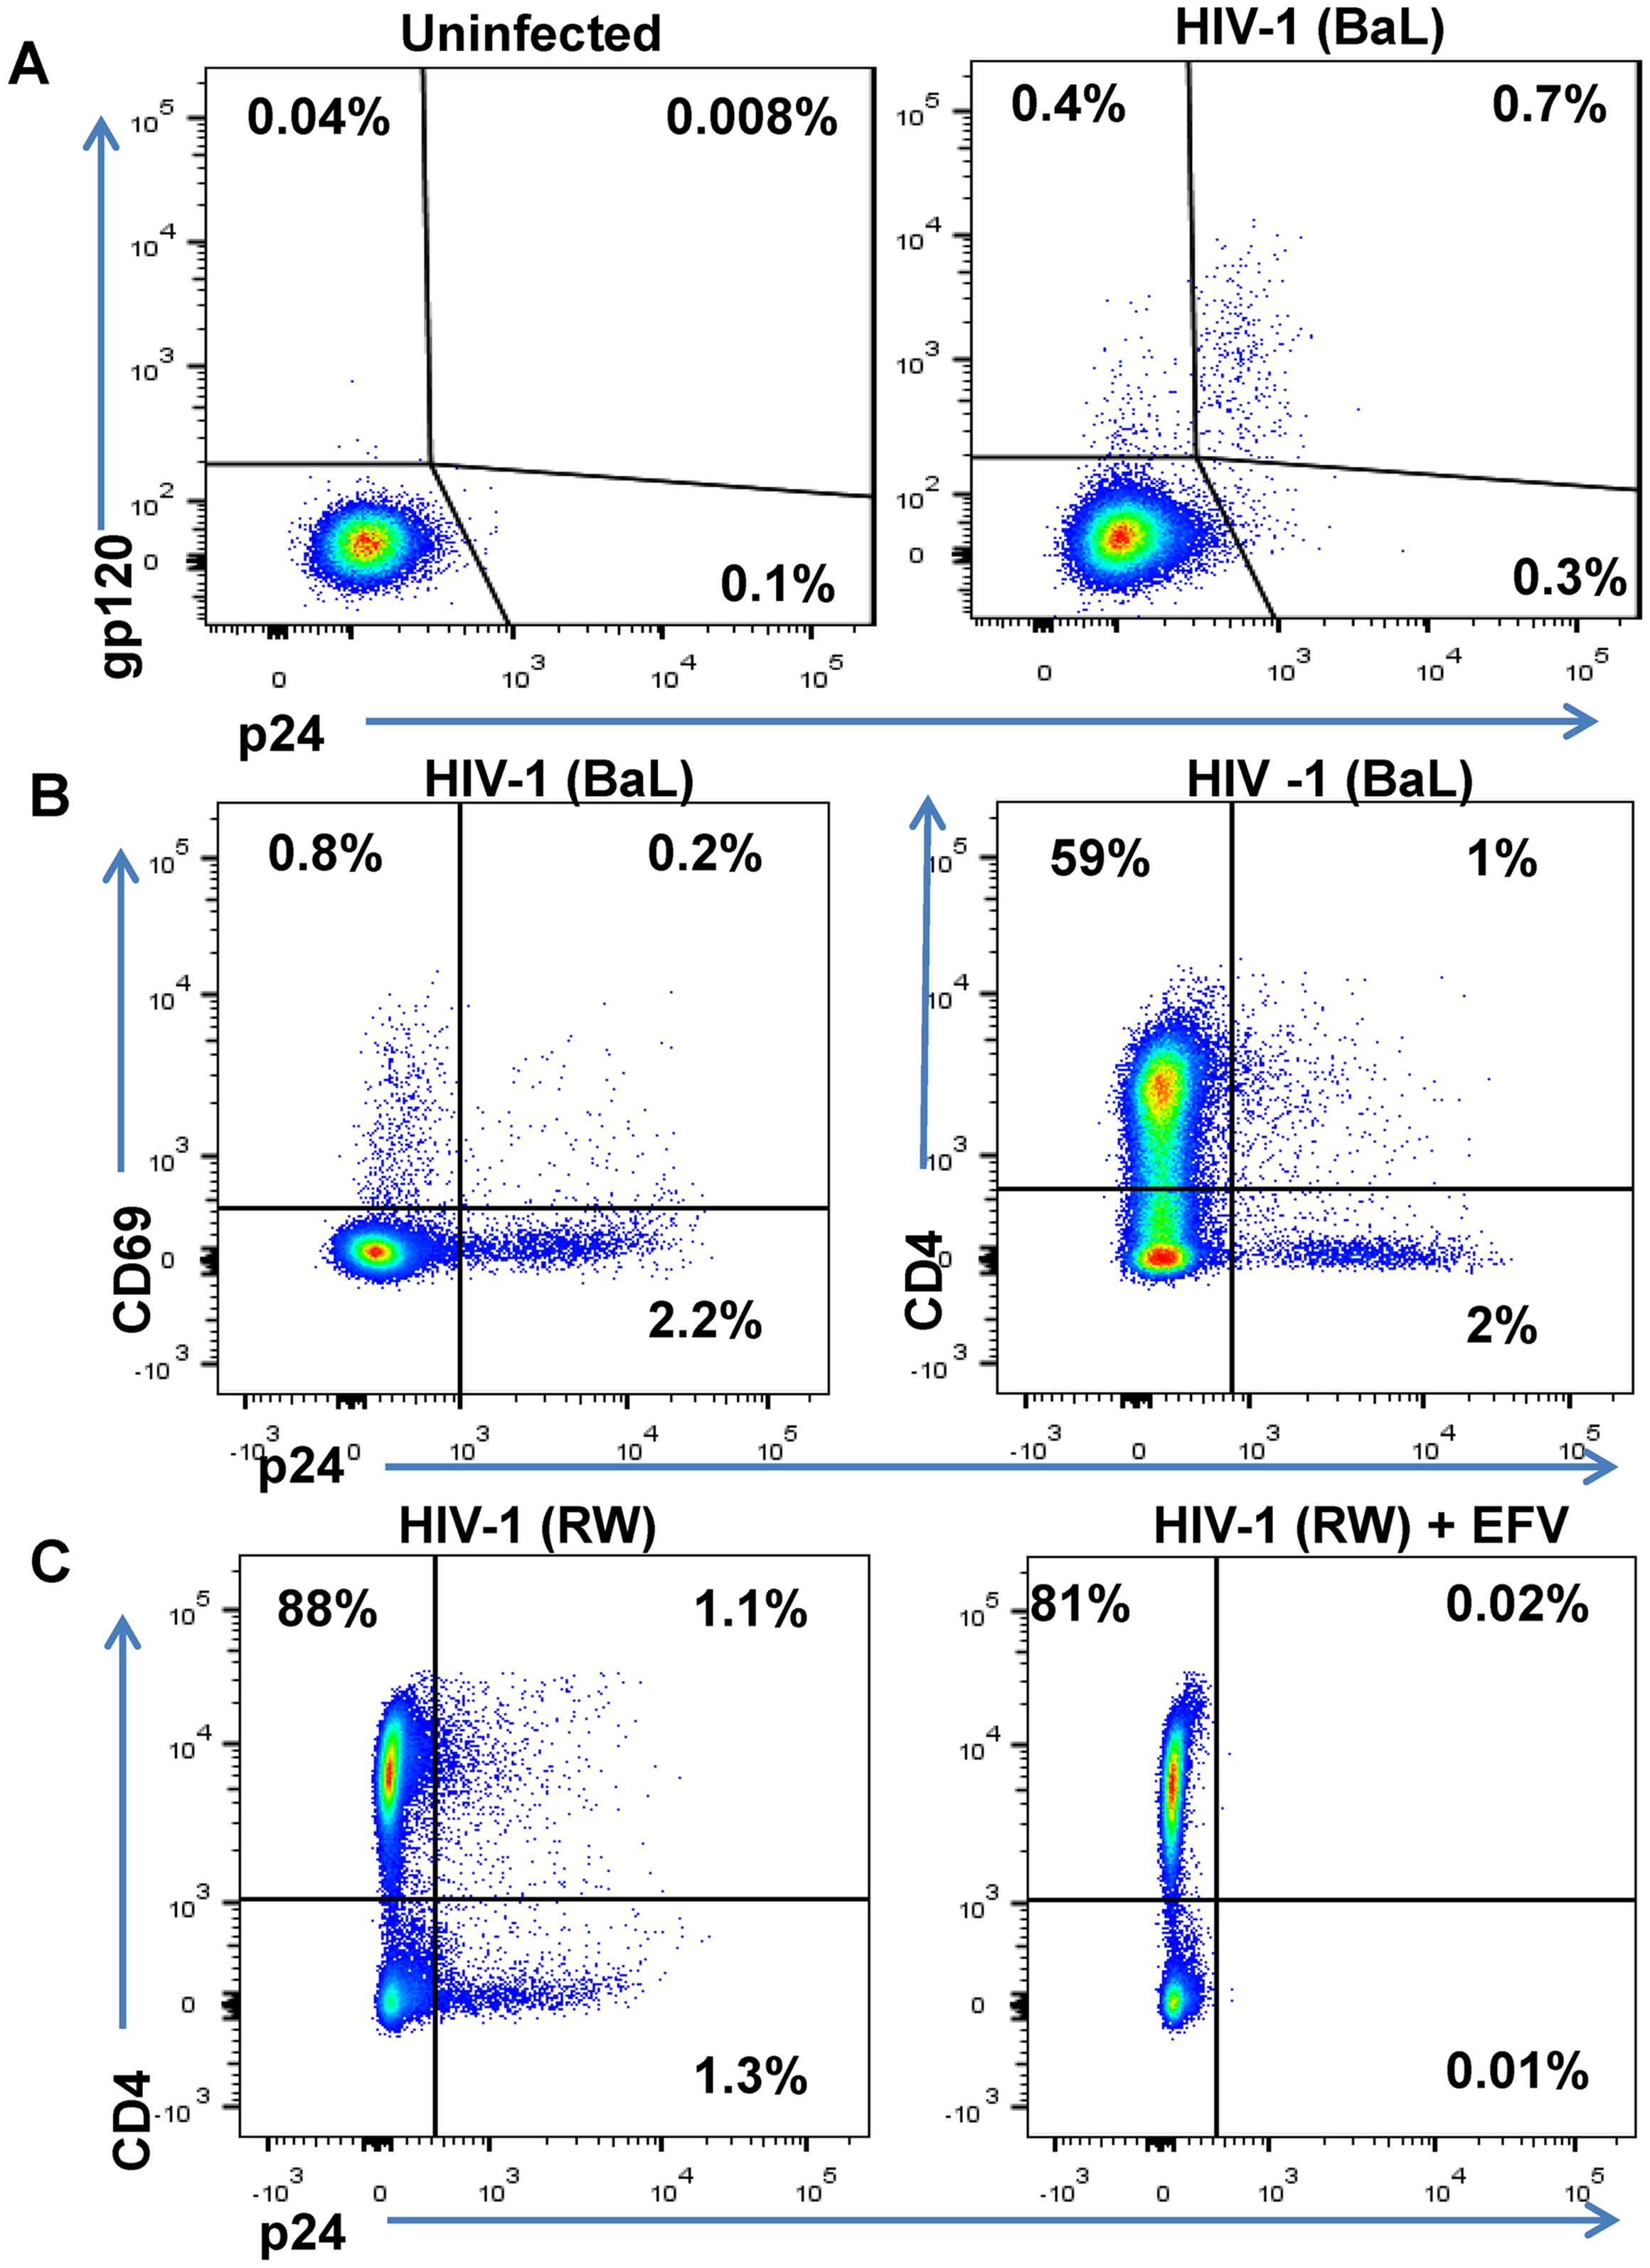 Phenotype of unstimulated primary CD4 T cells infected with HIV in vitro.